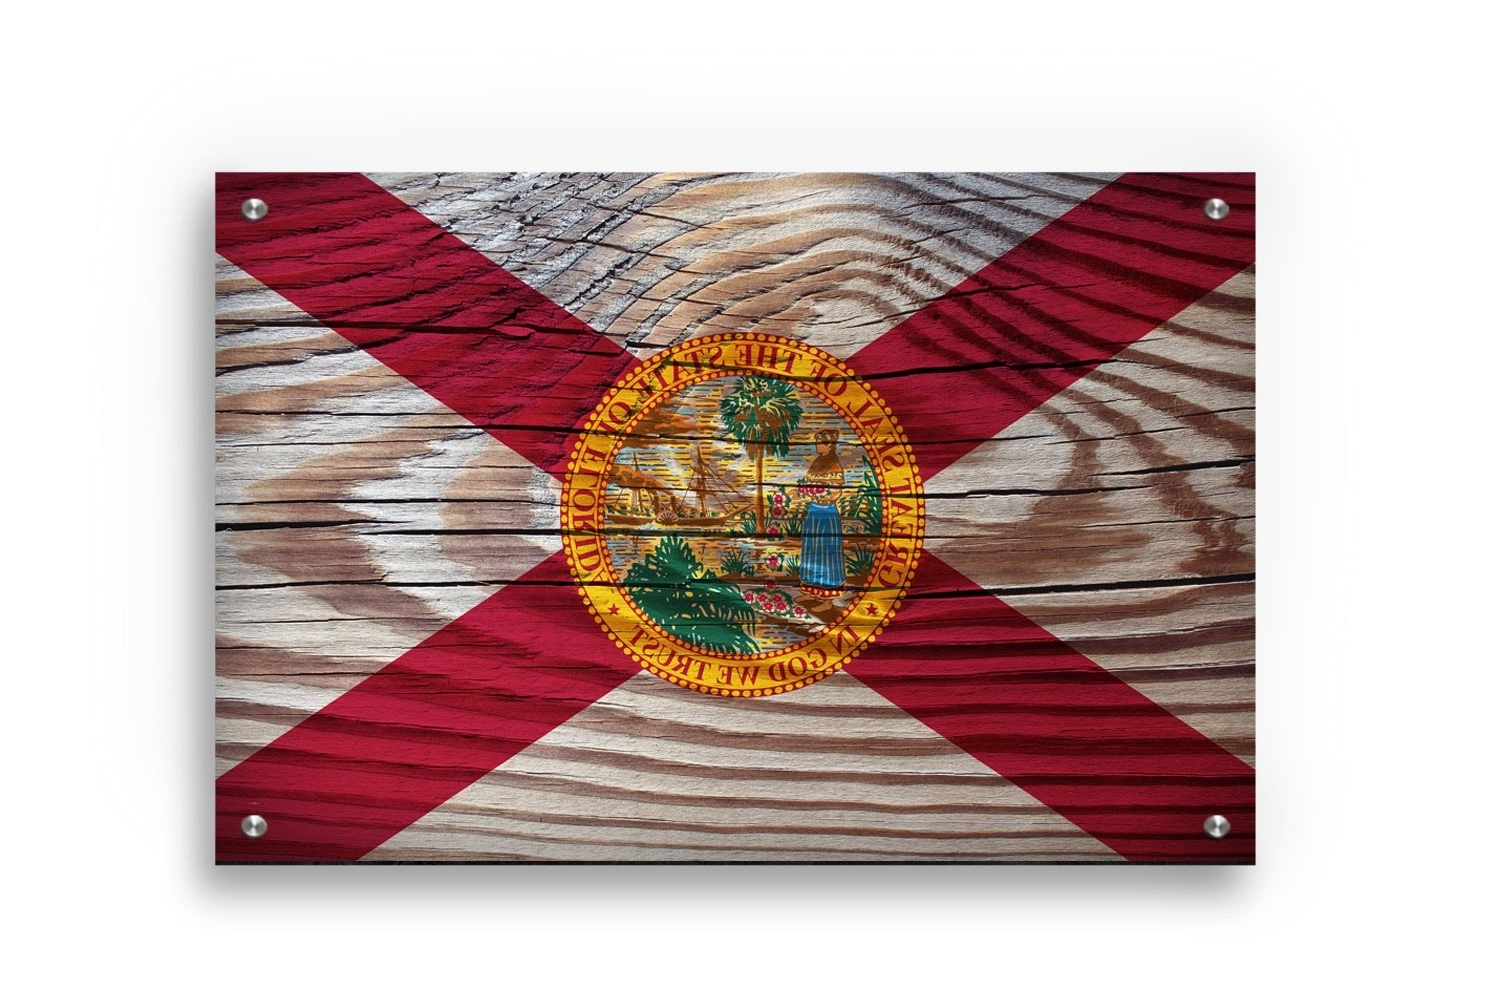 Florida State Flag Graffiti Wall Art Printed On Brushed Aluminum In Most Recent Florida Wall Art (View 8 of 15)